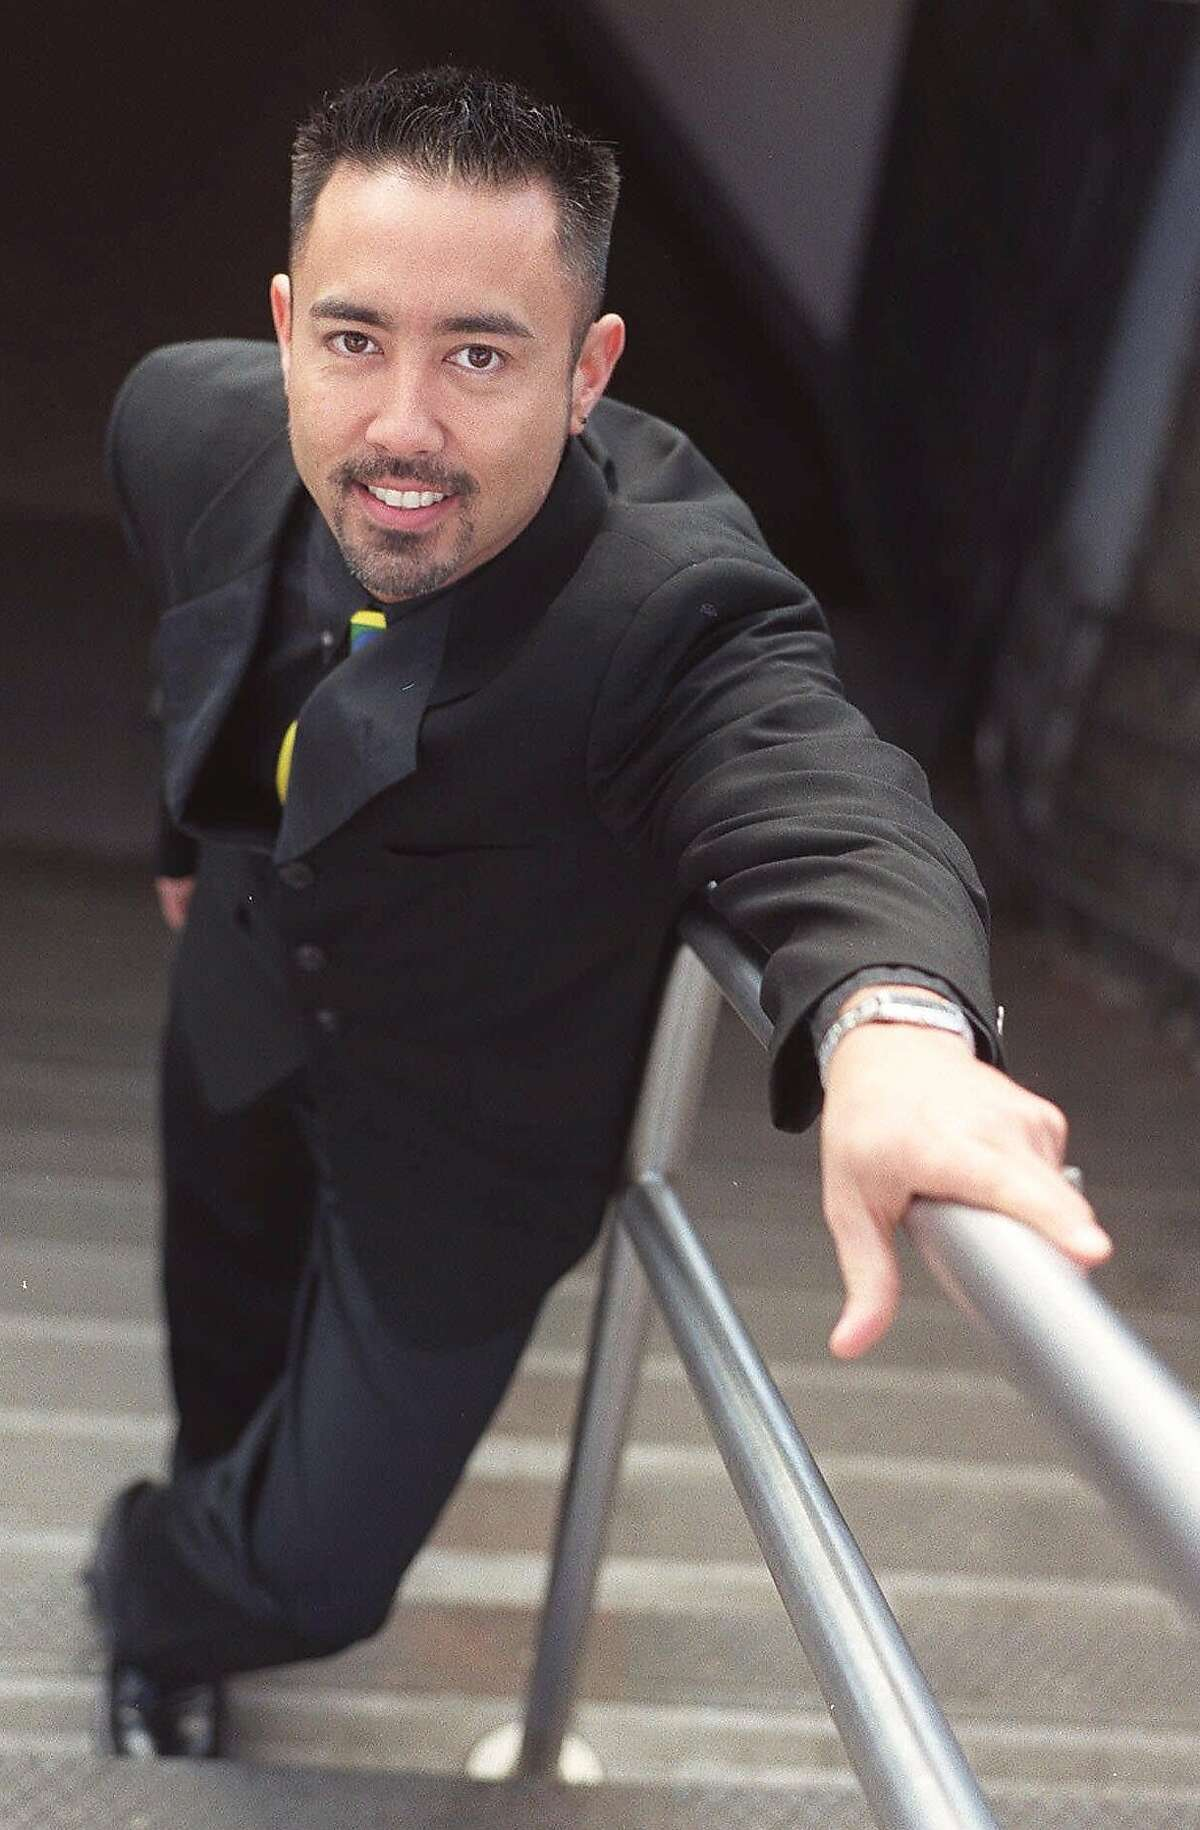 APN ADV. FOR SUN., APRIL 18--Countertenor Brian Asawa poses at a subway entrance on New York's Union Square, March 17, 1999. Asawa, 32, is among a small number of male singers to perform in the countertenor's high range, similar to the female mezzo-soprano voice. (AP Photo/Jim Cooper)